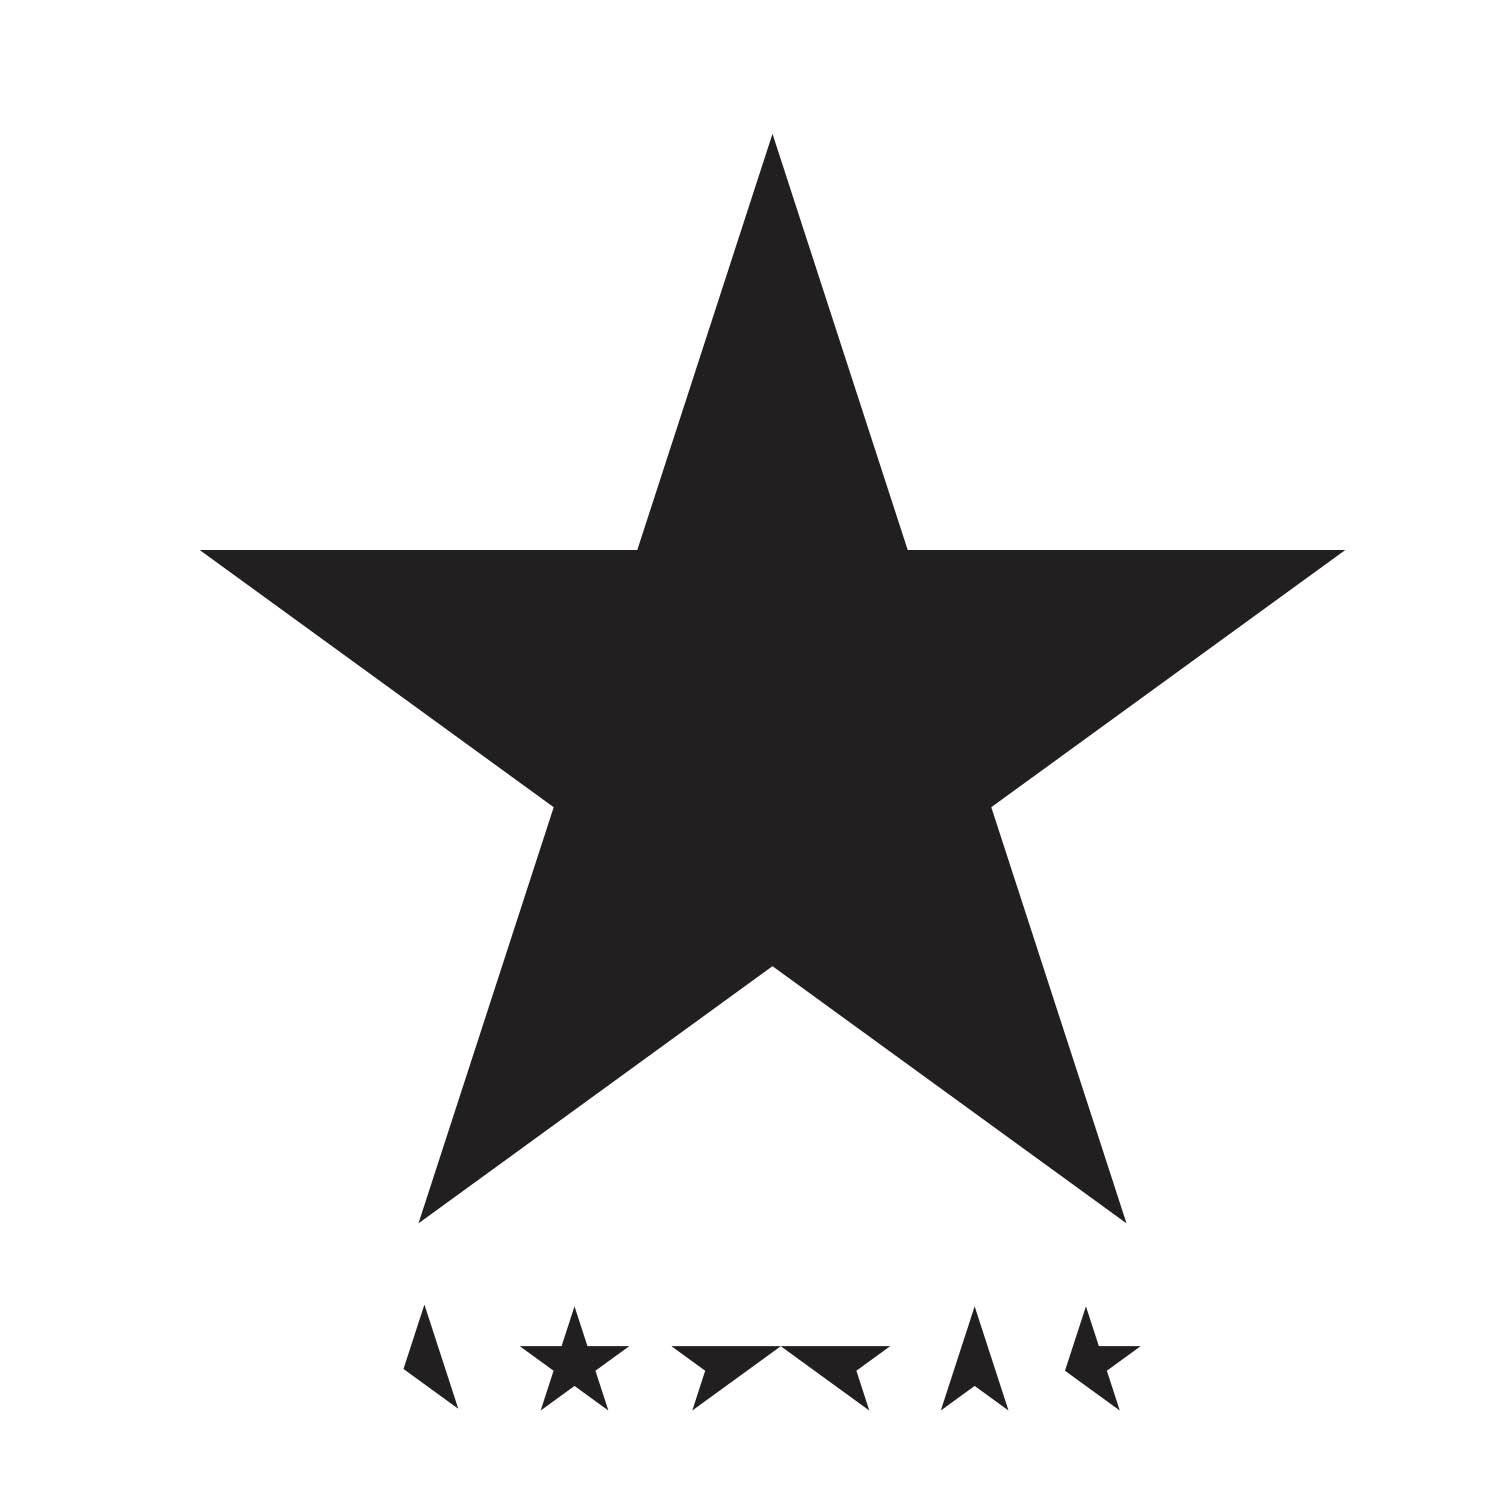 Review: David Bowie's 'Blackstar' Is Adventurous To The End